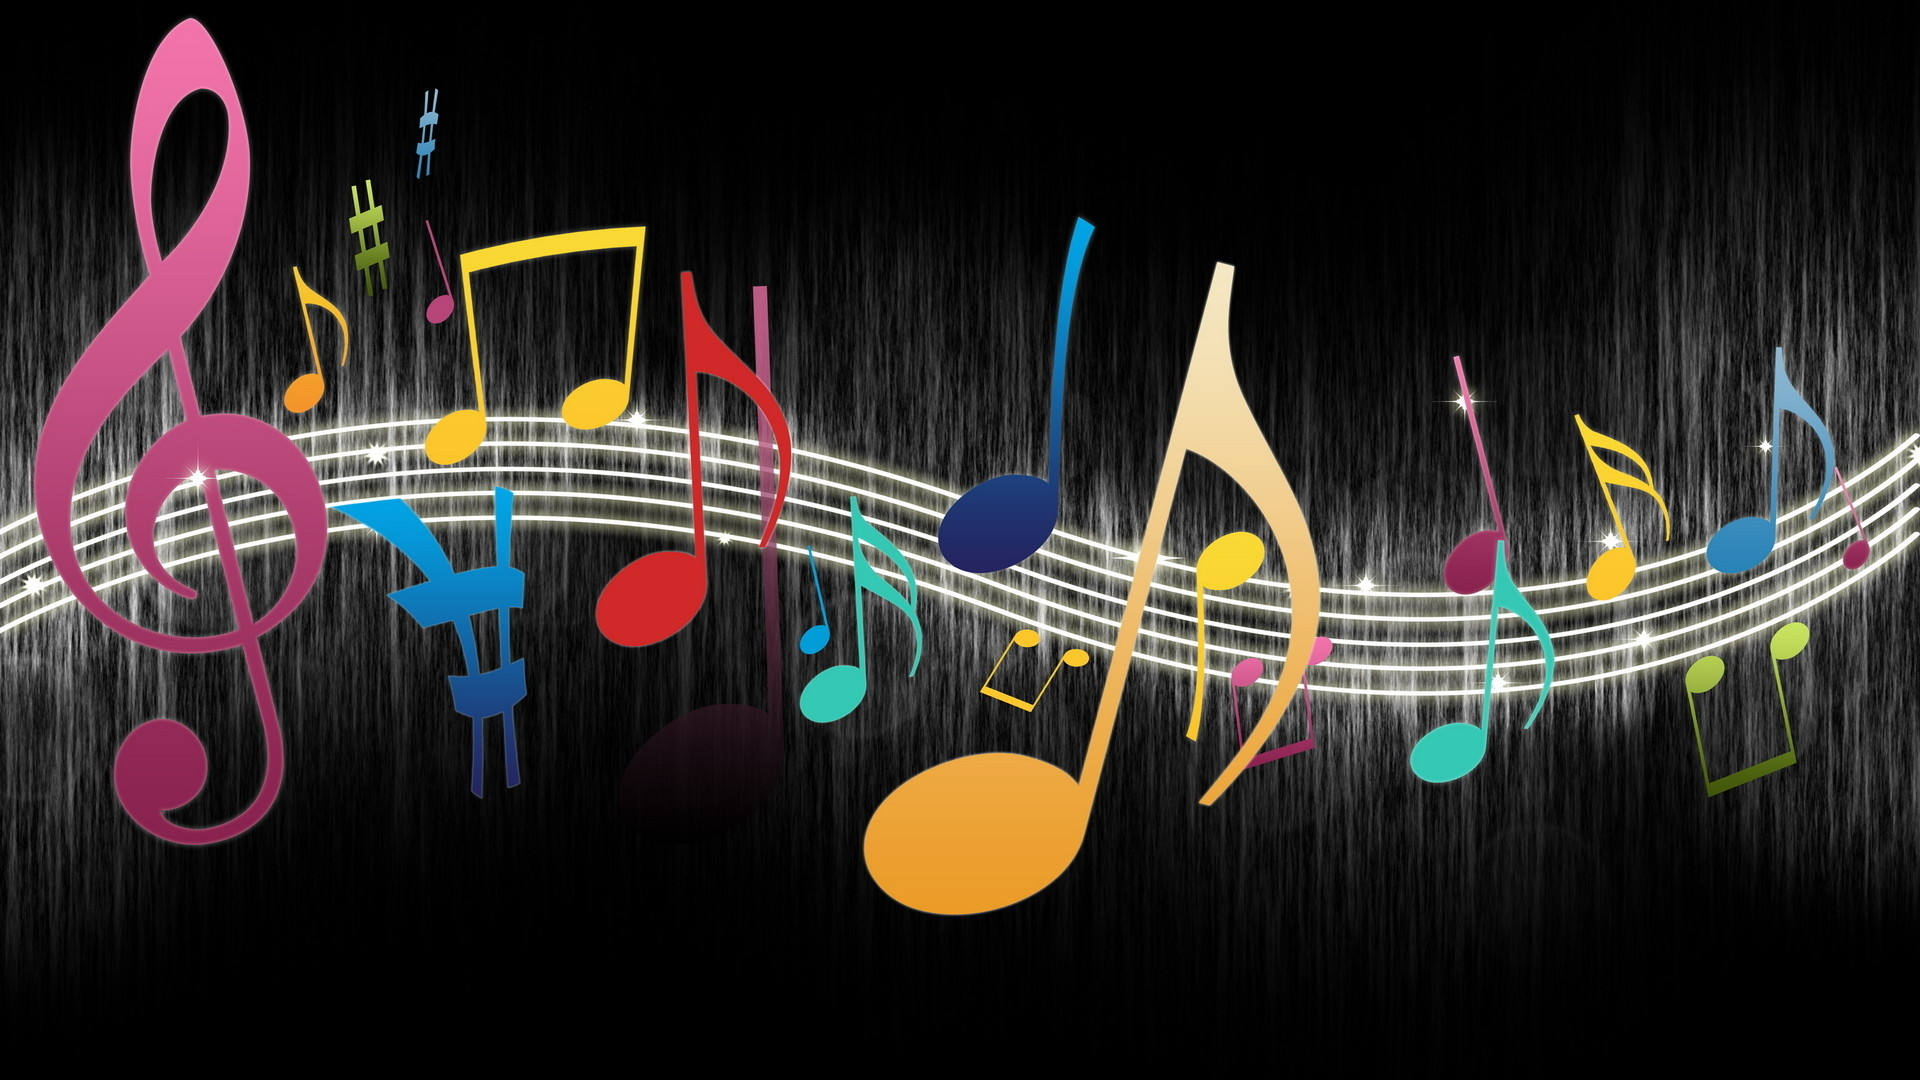 Fantastic Wallpaper Music Rainbow - 806999-vertical-music-graffiti-wallpapers-1920x1080-image  Pic_723138.jpg